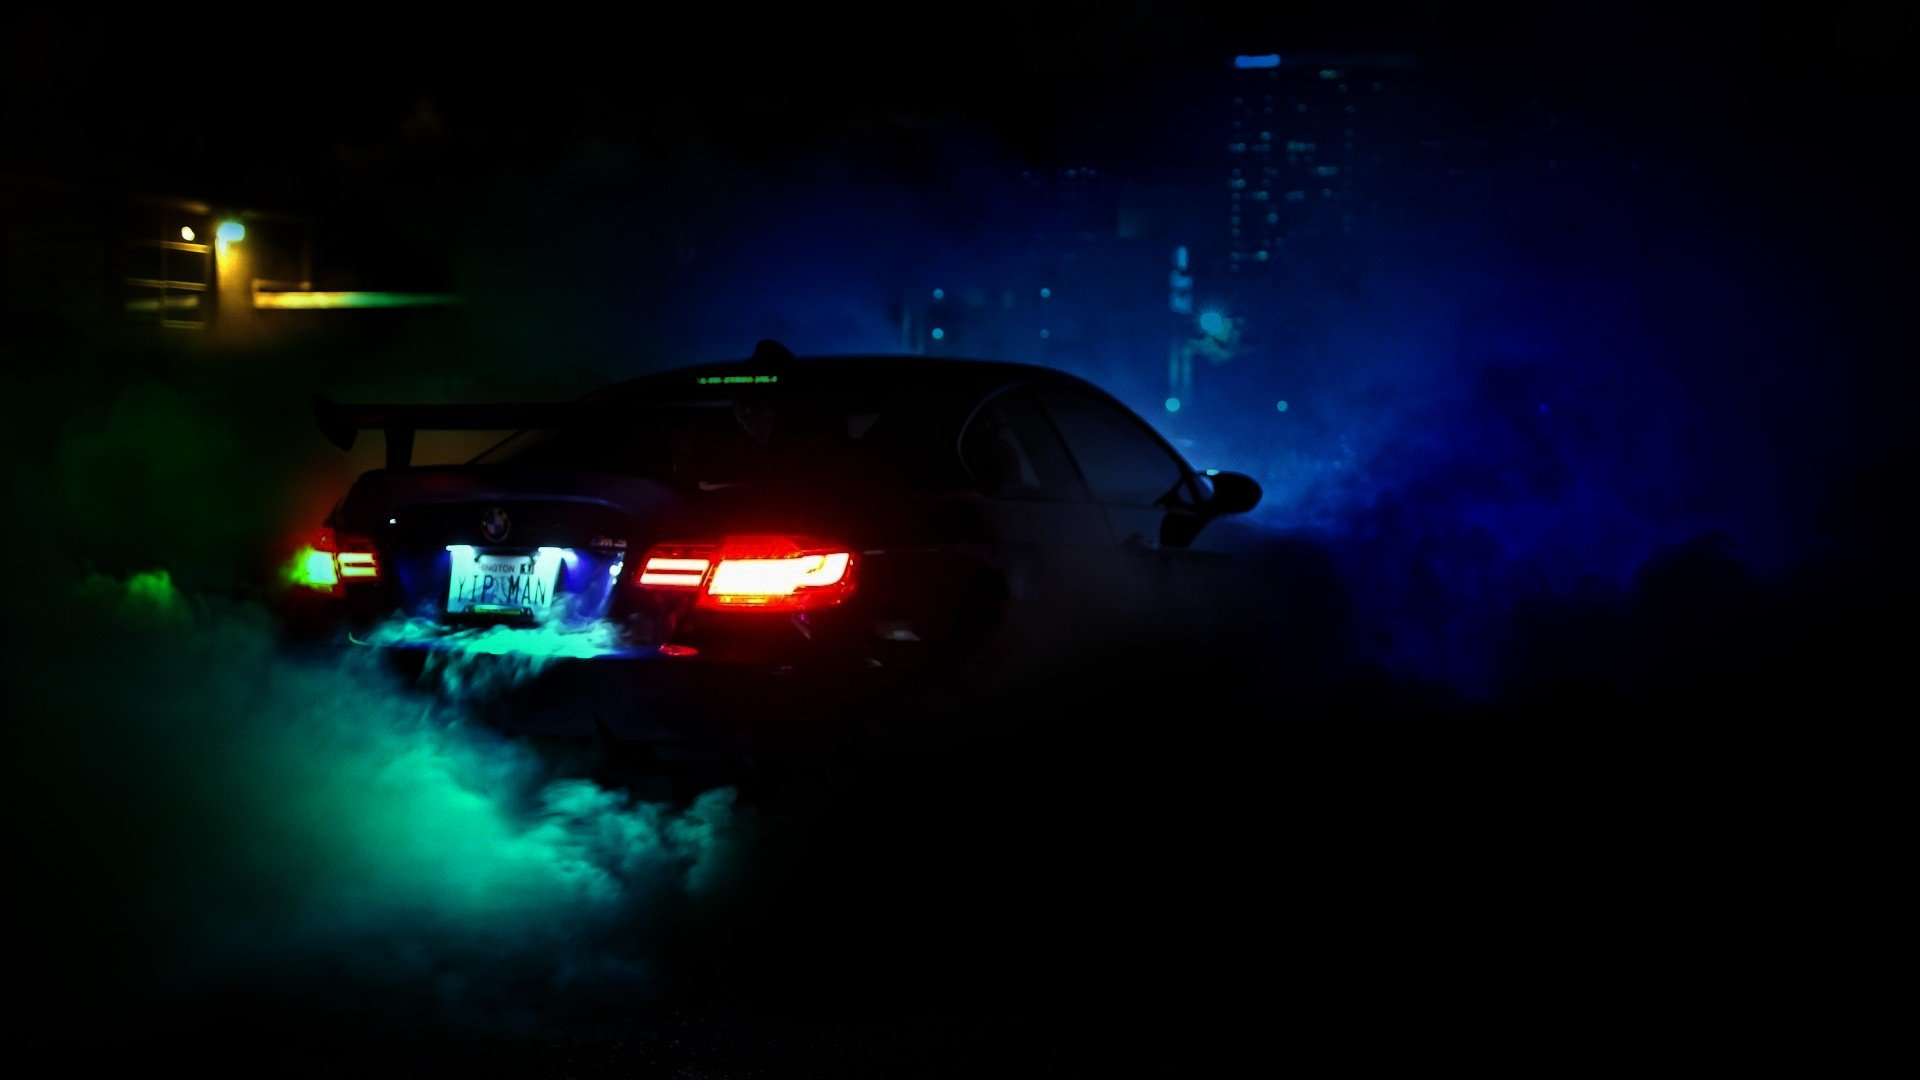 Bmw M4 Hd Wallpaper 1080p Fast And Furious Wallpapers 1920x1080 Full Hd 1080p